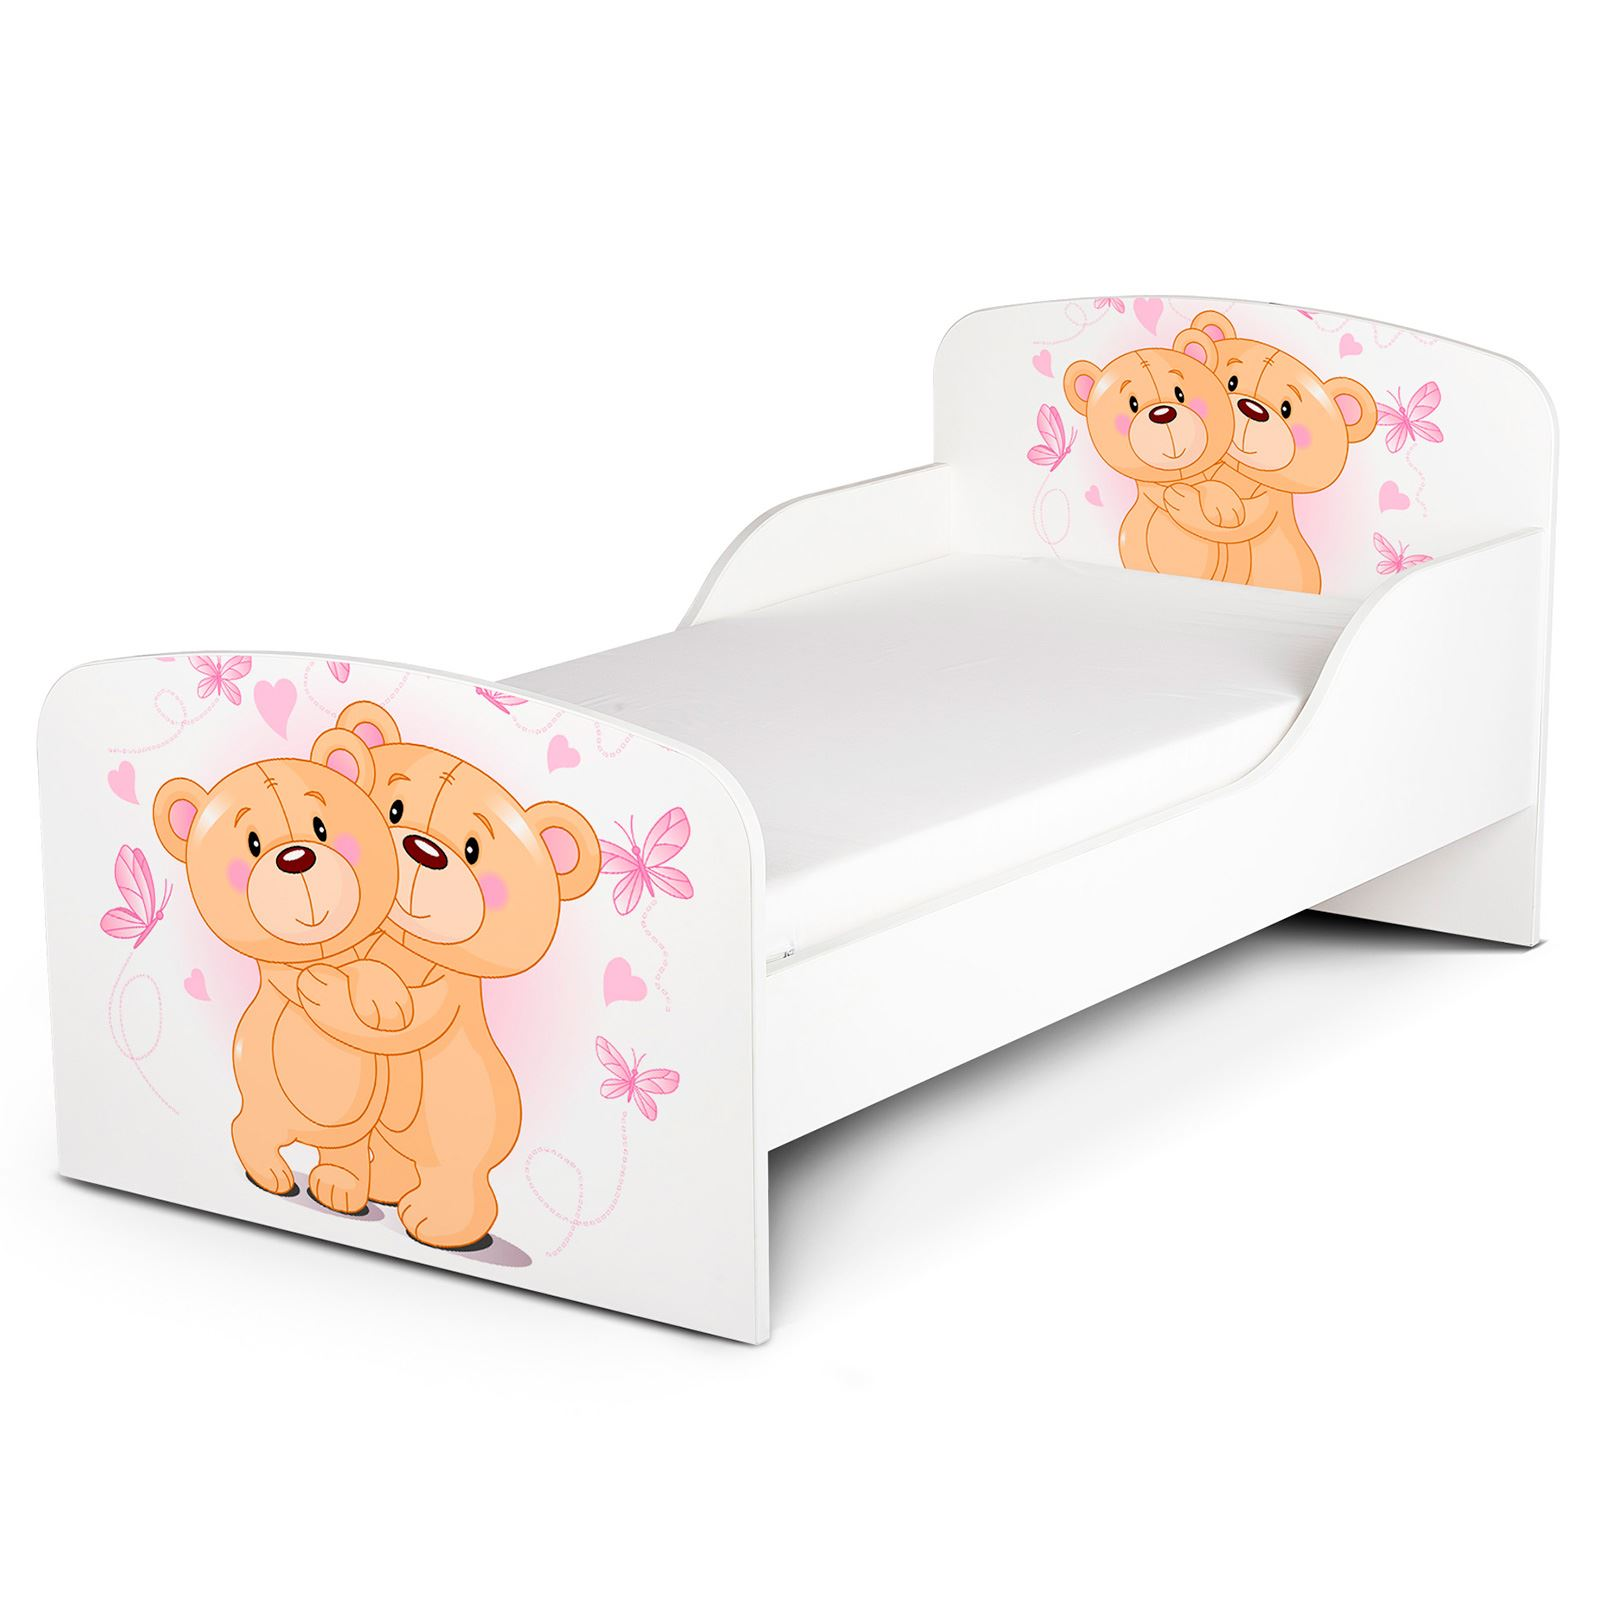 PRICERIGHTHOME TEDDY BEAR HUG TODDLER BED WITH PROTECTIVE